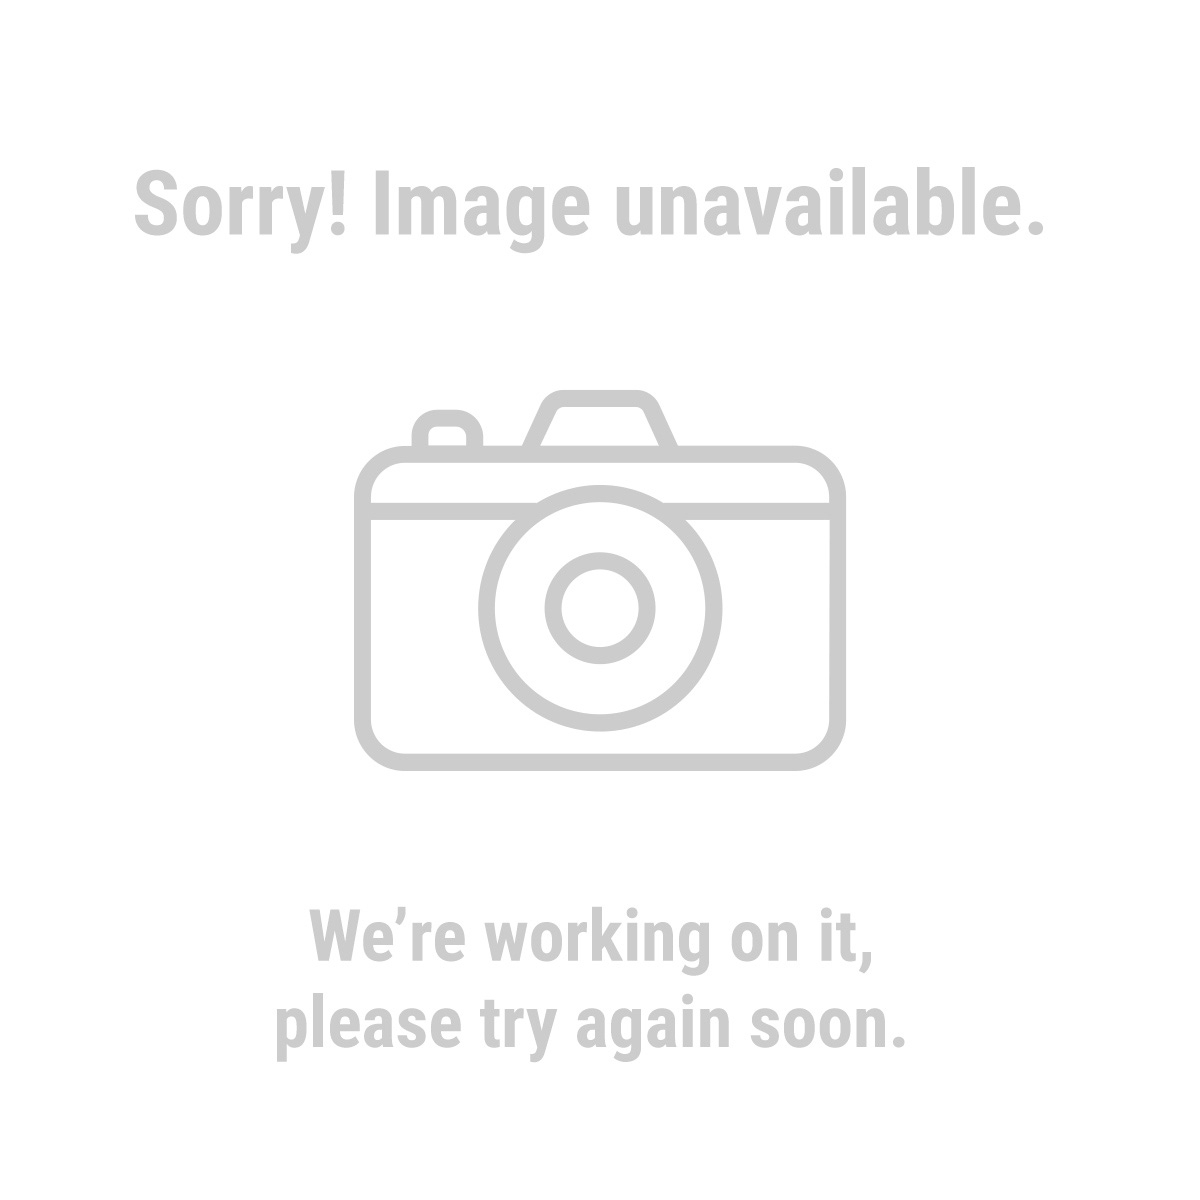 Haul-Master 65620 Motorcycle Swingarm Rear Stand